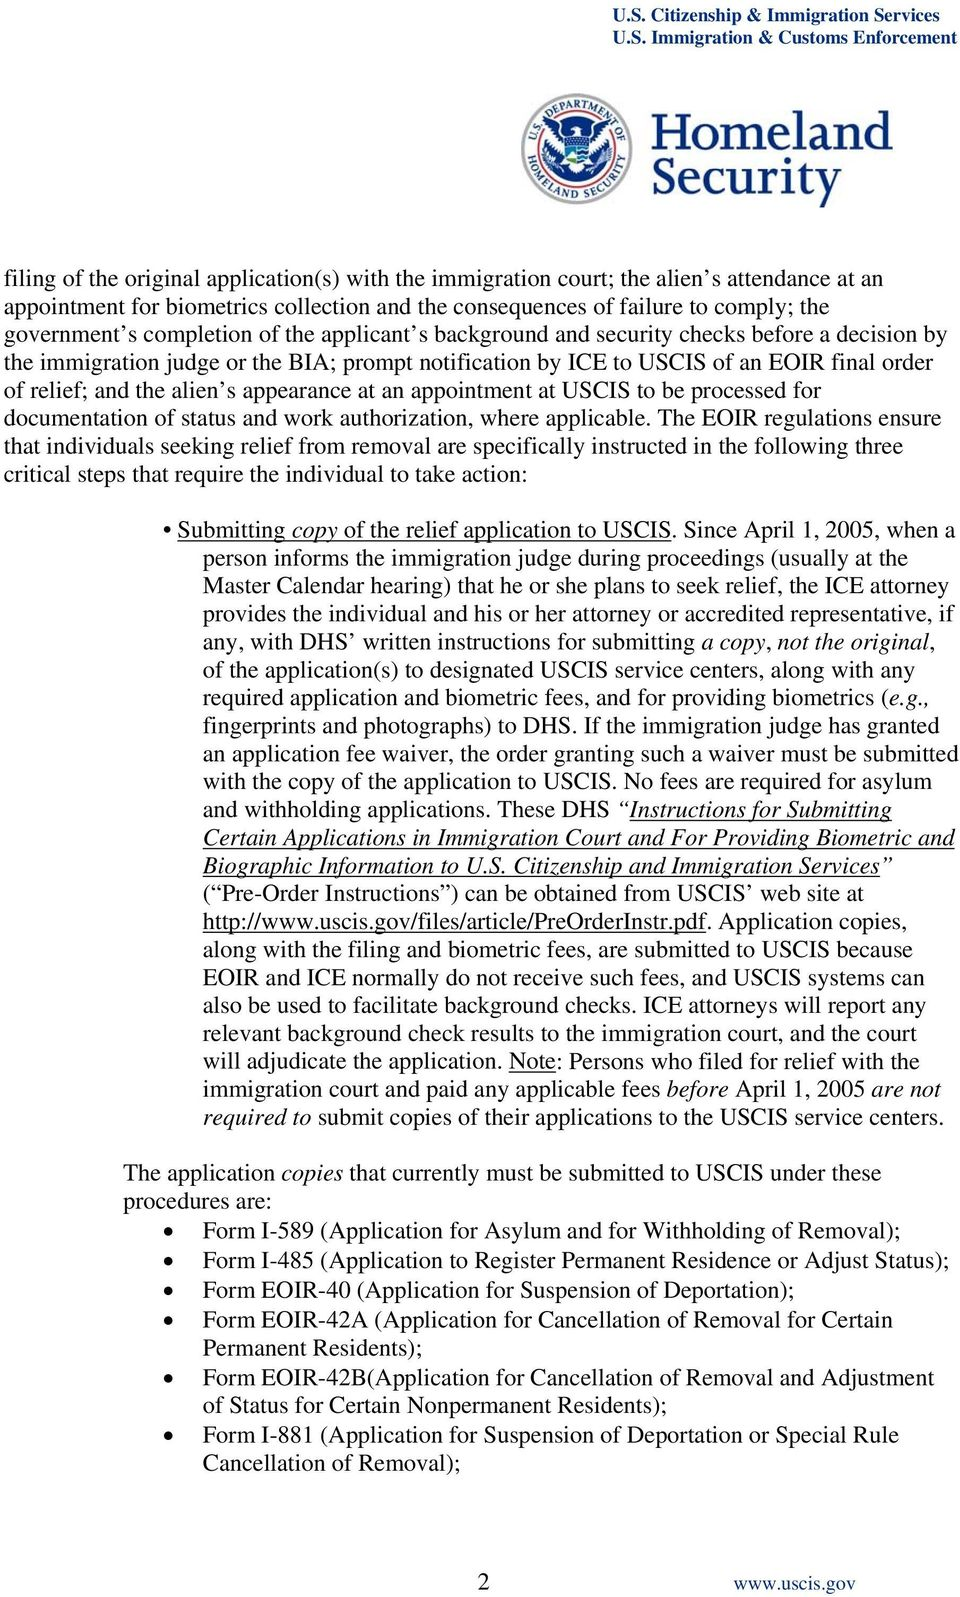 s appearance at an appointment at USCIS to be processed for documentation of status and work authorization, where applicable.